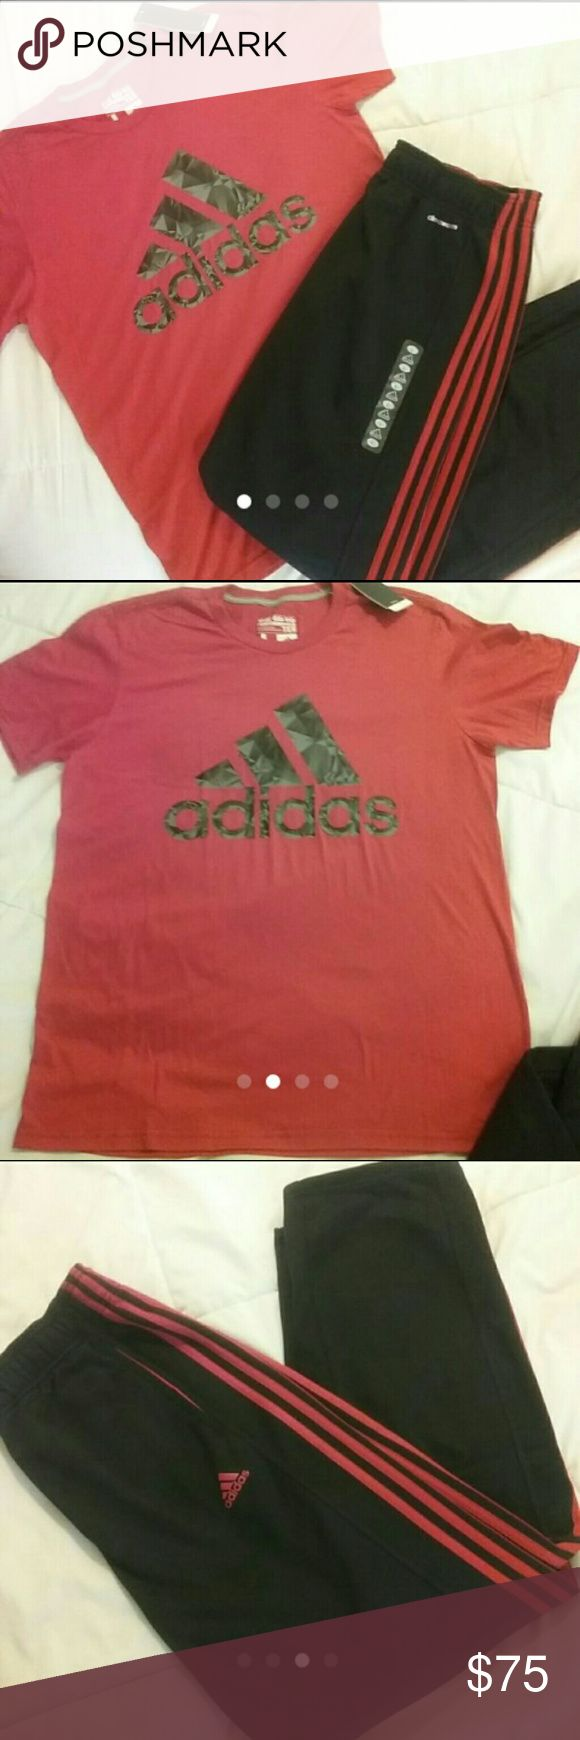 Adidas workout shirt and pant bundle sz large Price is Firm Lots of other Adidas and Nike wear in my closet men's and women's new and used Brand new in store and brand new with tags!! Bright red Adidas shirt with grey and black logo Size large Black Adidas climawarm house or workout pant  Size large also Black with red stripes down the sides Adidas Pants Sweatpants & Joggers